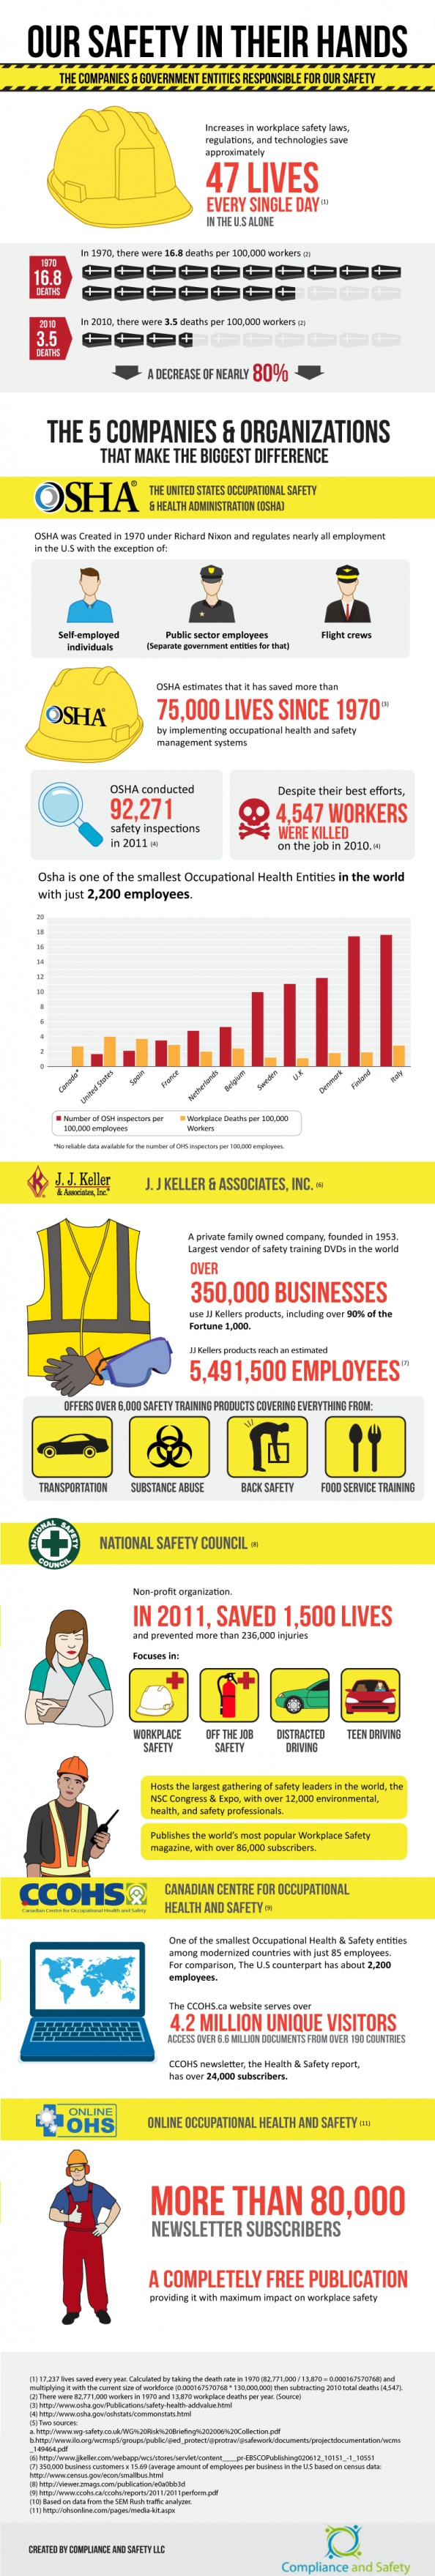 Companies & government entities responsible for health and safety in the workplace. Left off MSHA